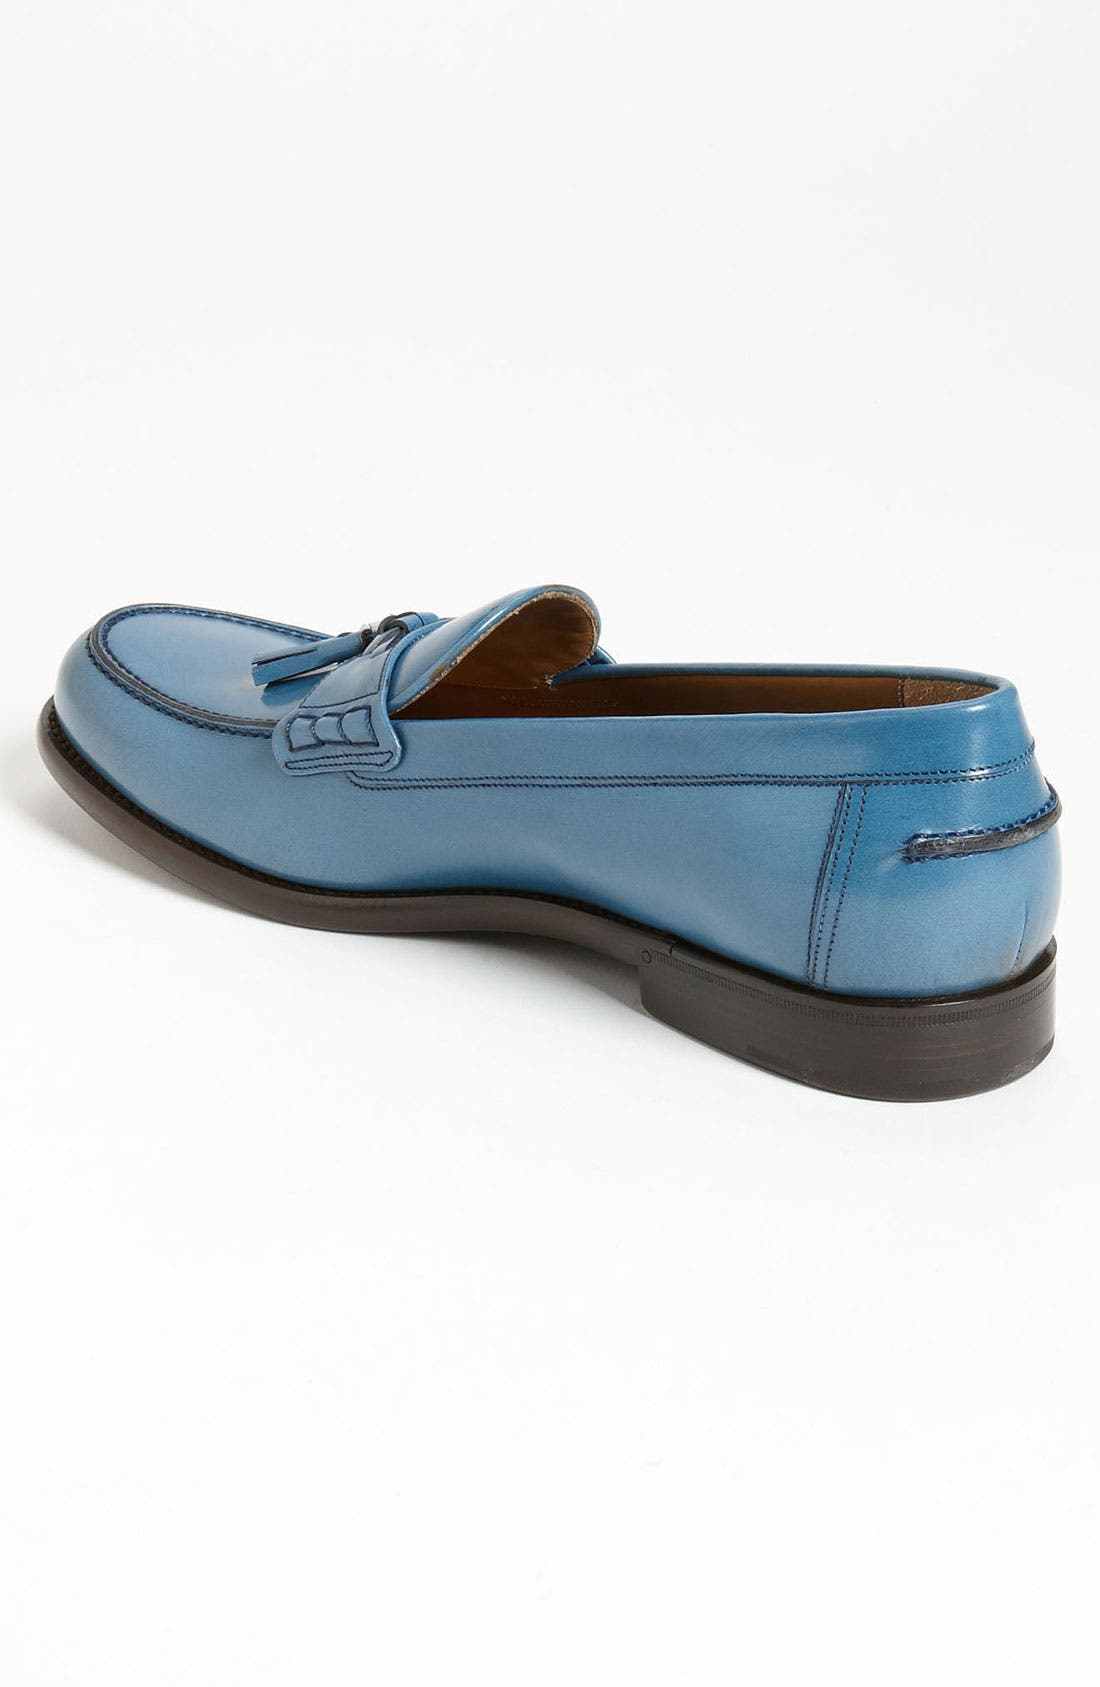 Alternate Image 2  - Salvatore Ferragamo 'Treviso' Tassel Loafer